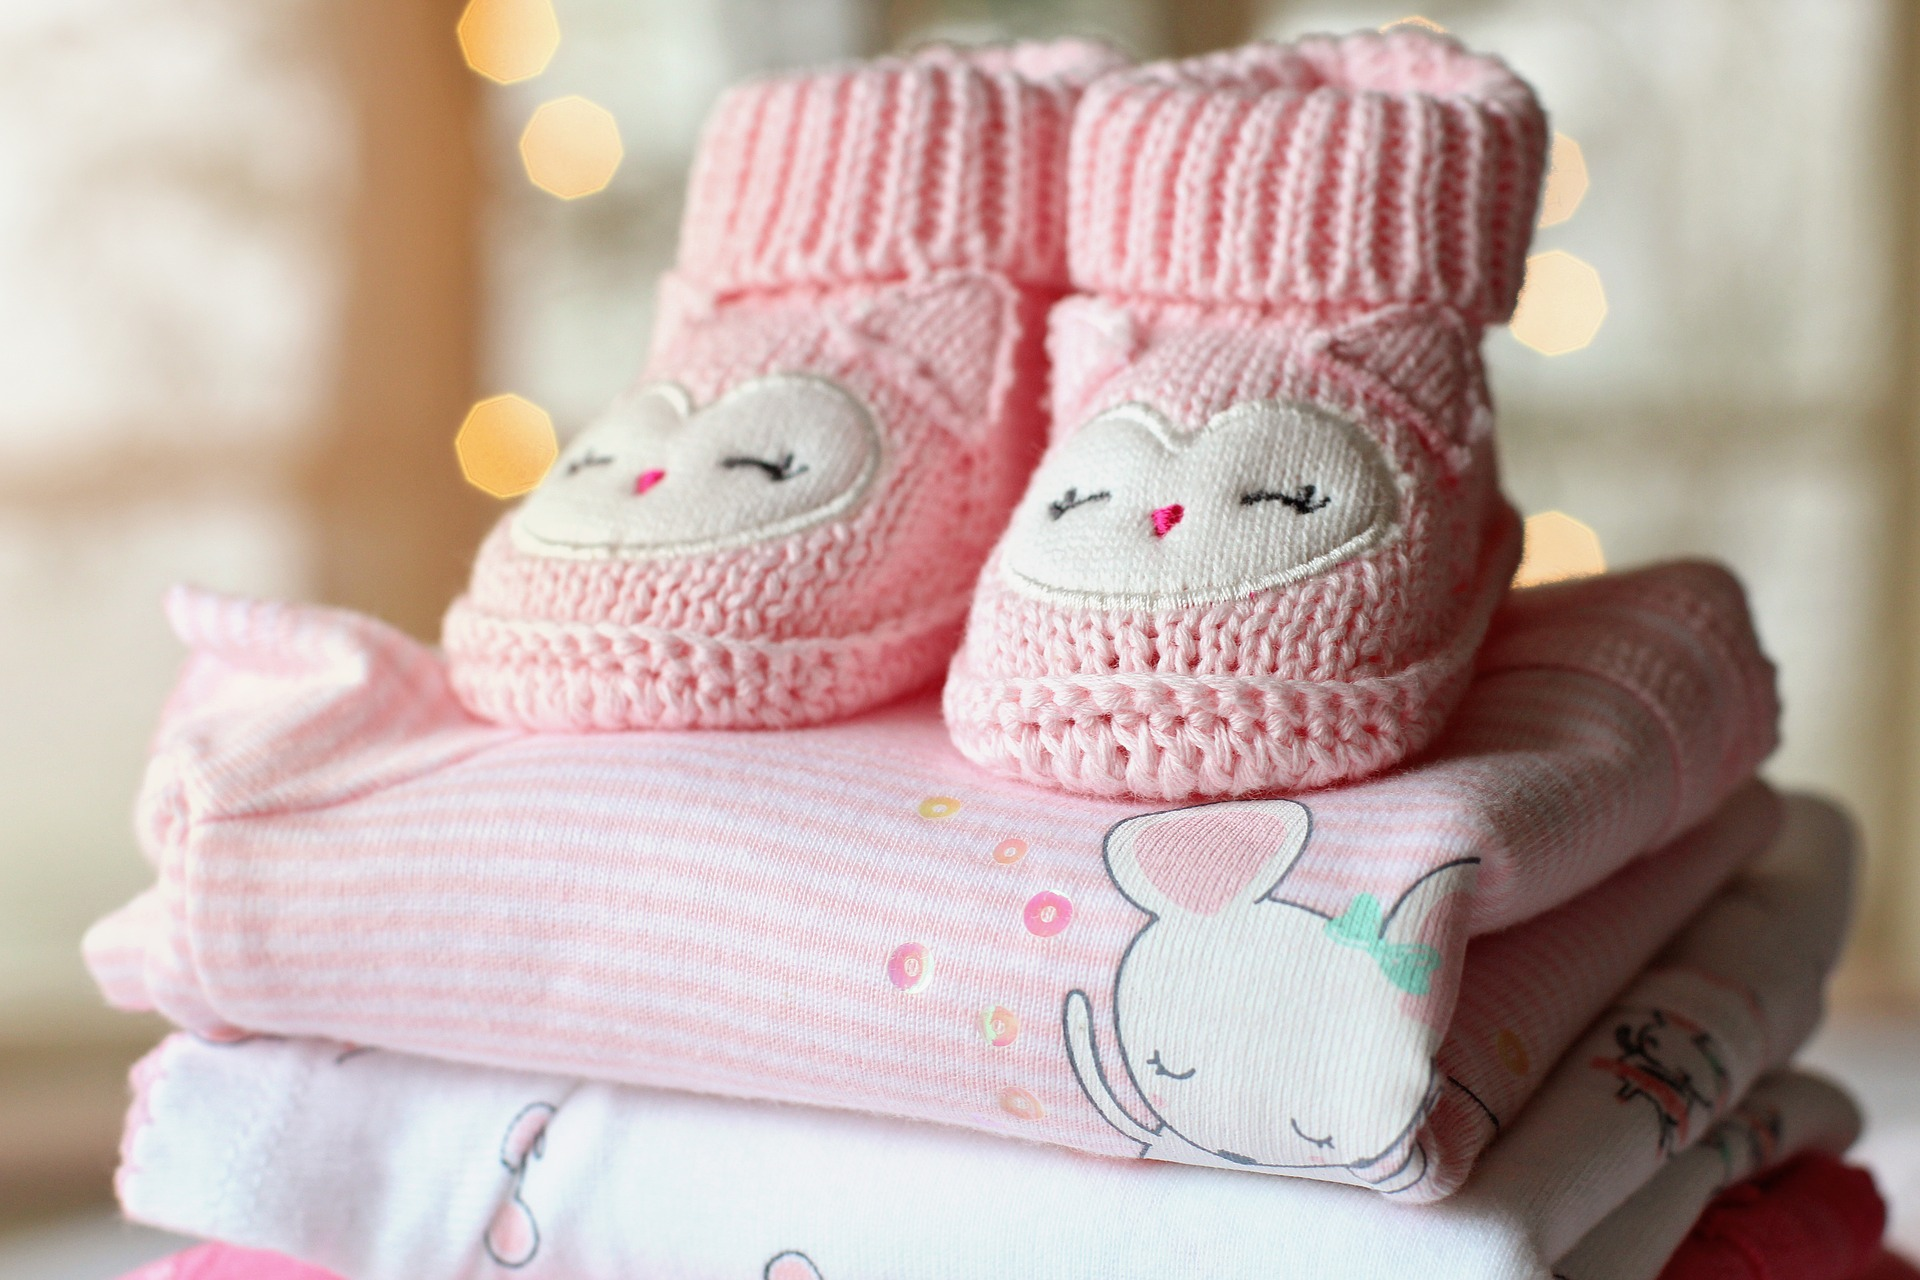 4 Ways To Prepare for a New Baby on a Budget